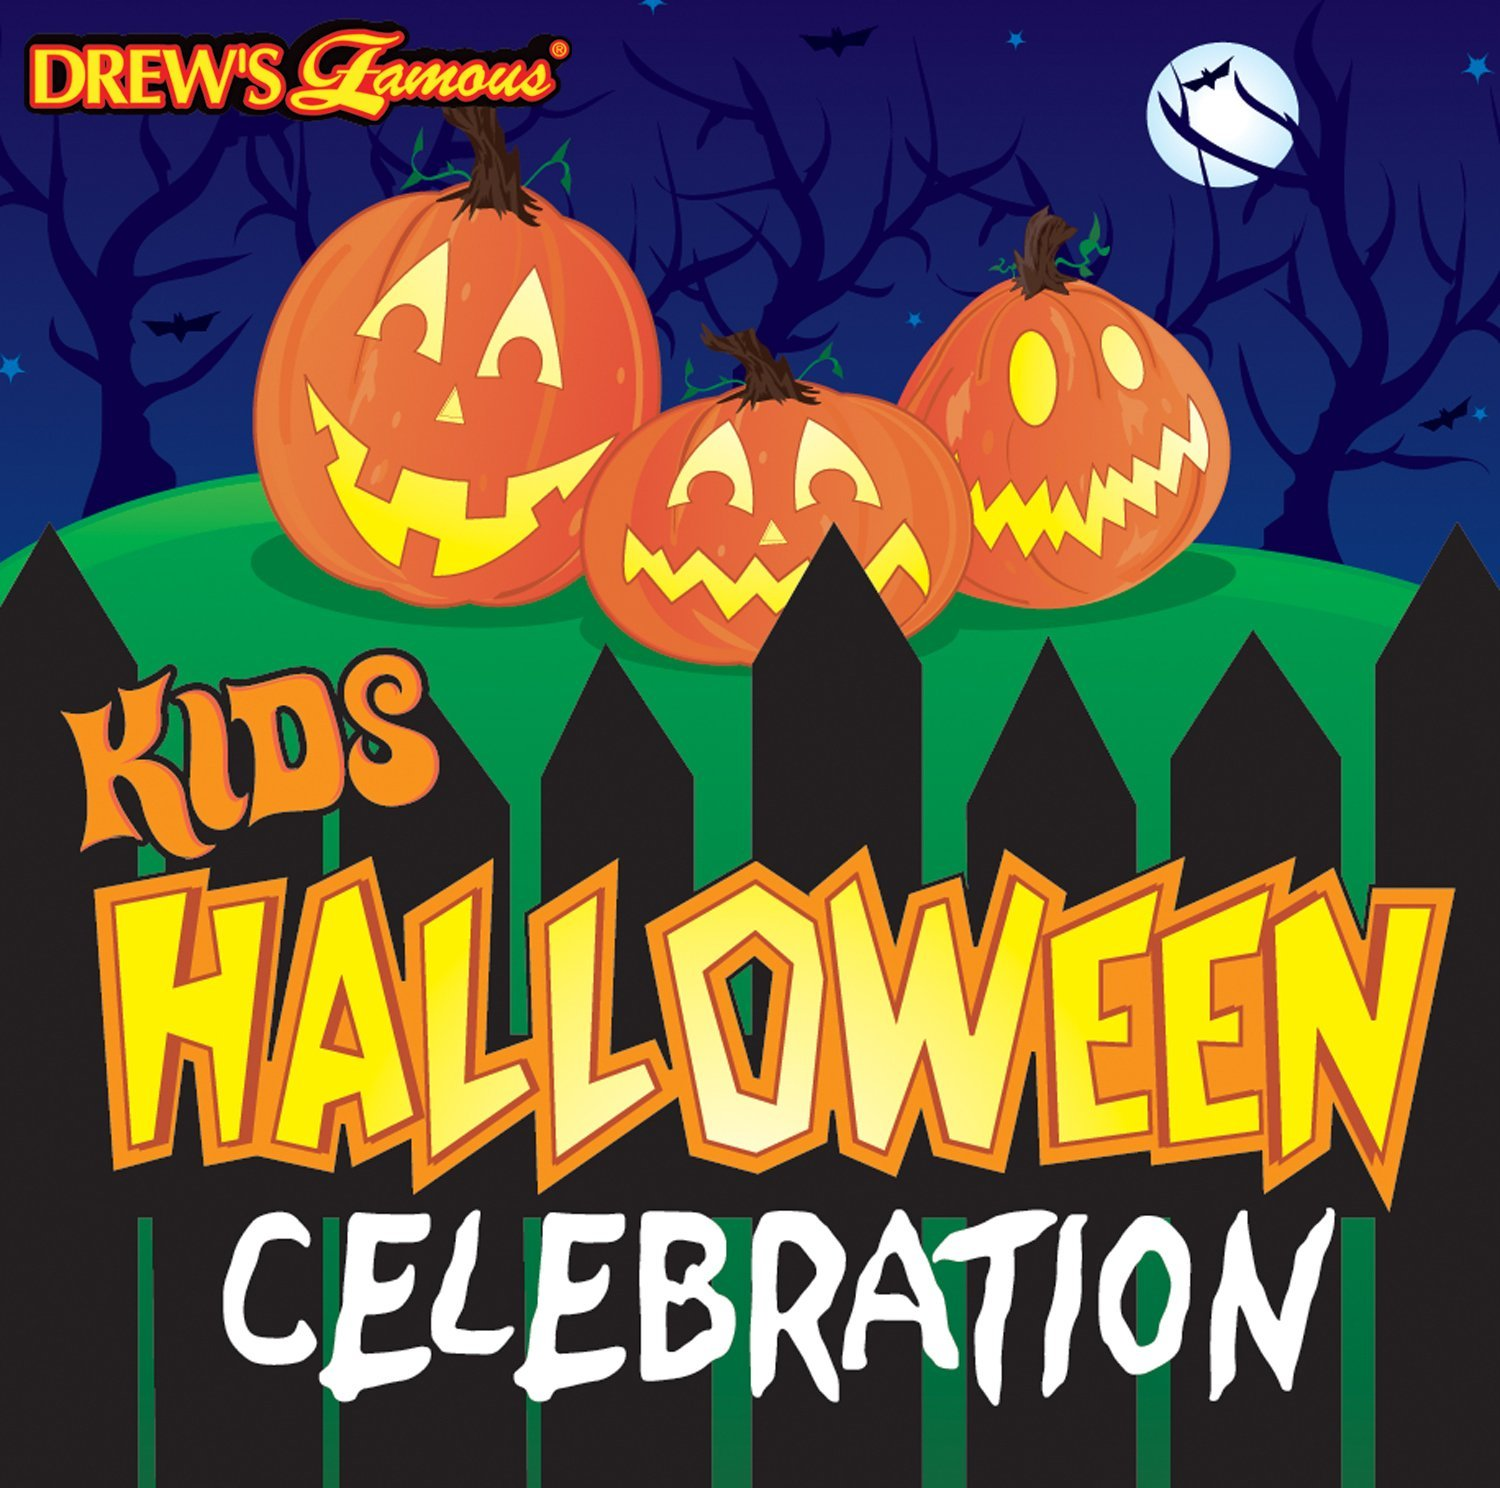 Kids Halloween Celebration Music Songs Sounds And Stories by Drew's Famous